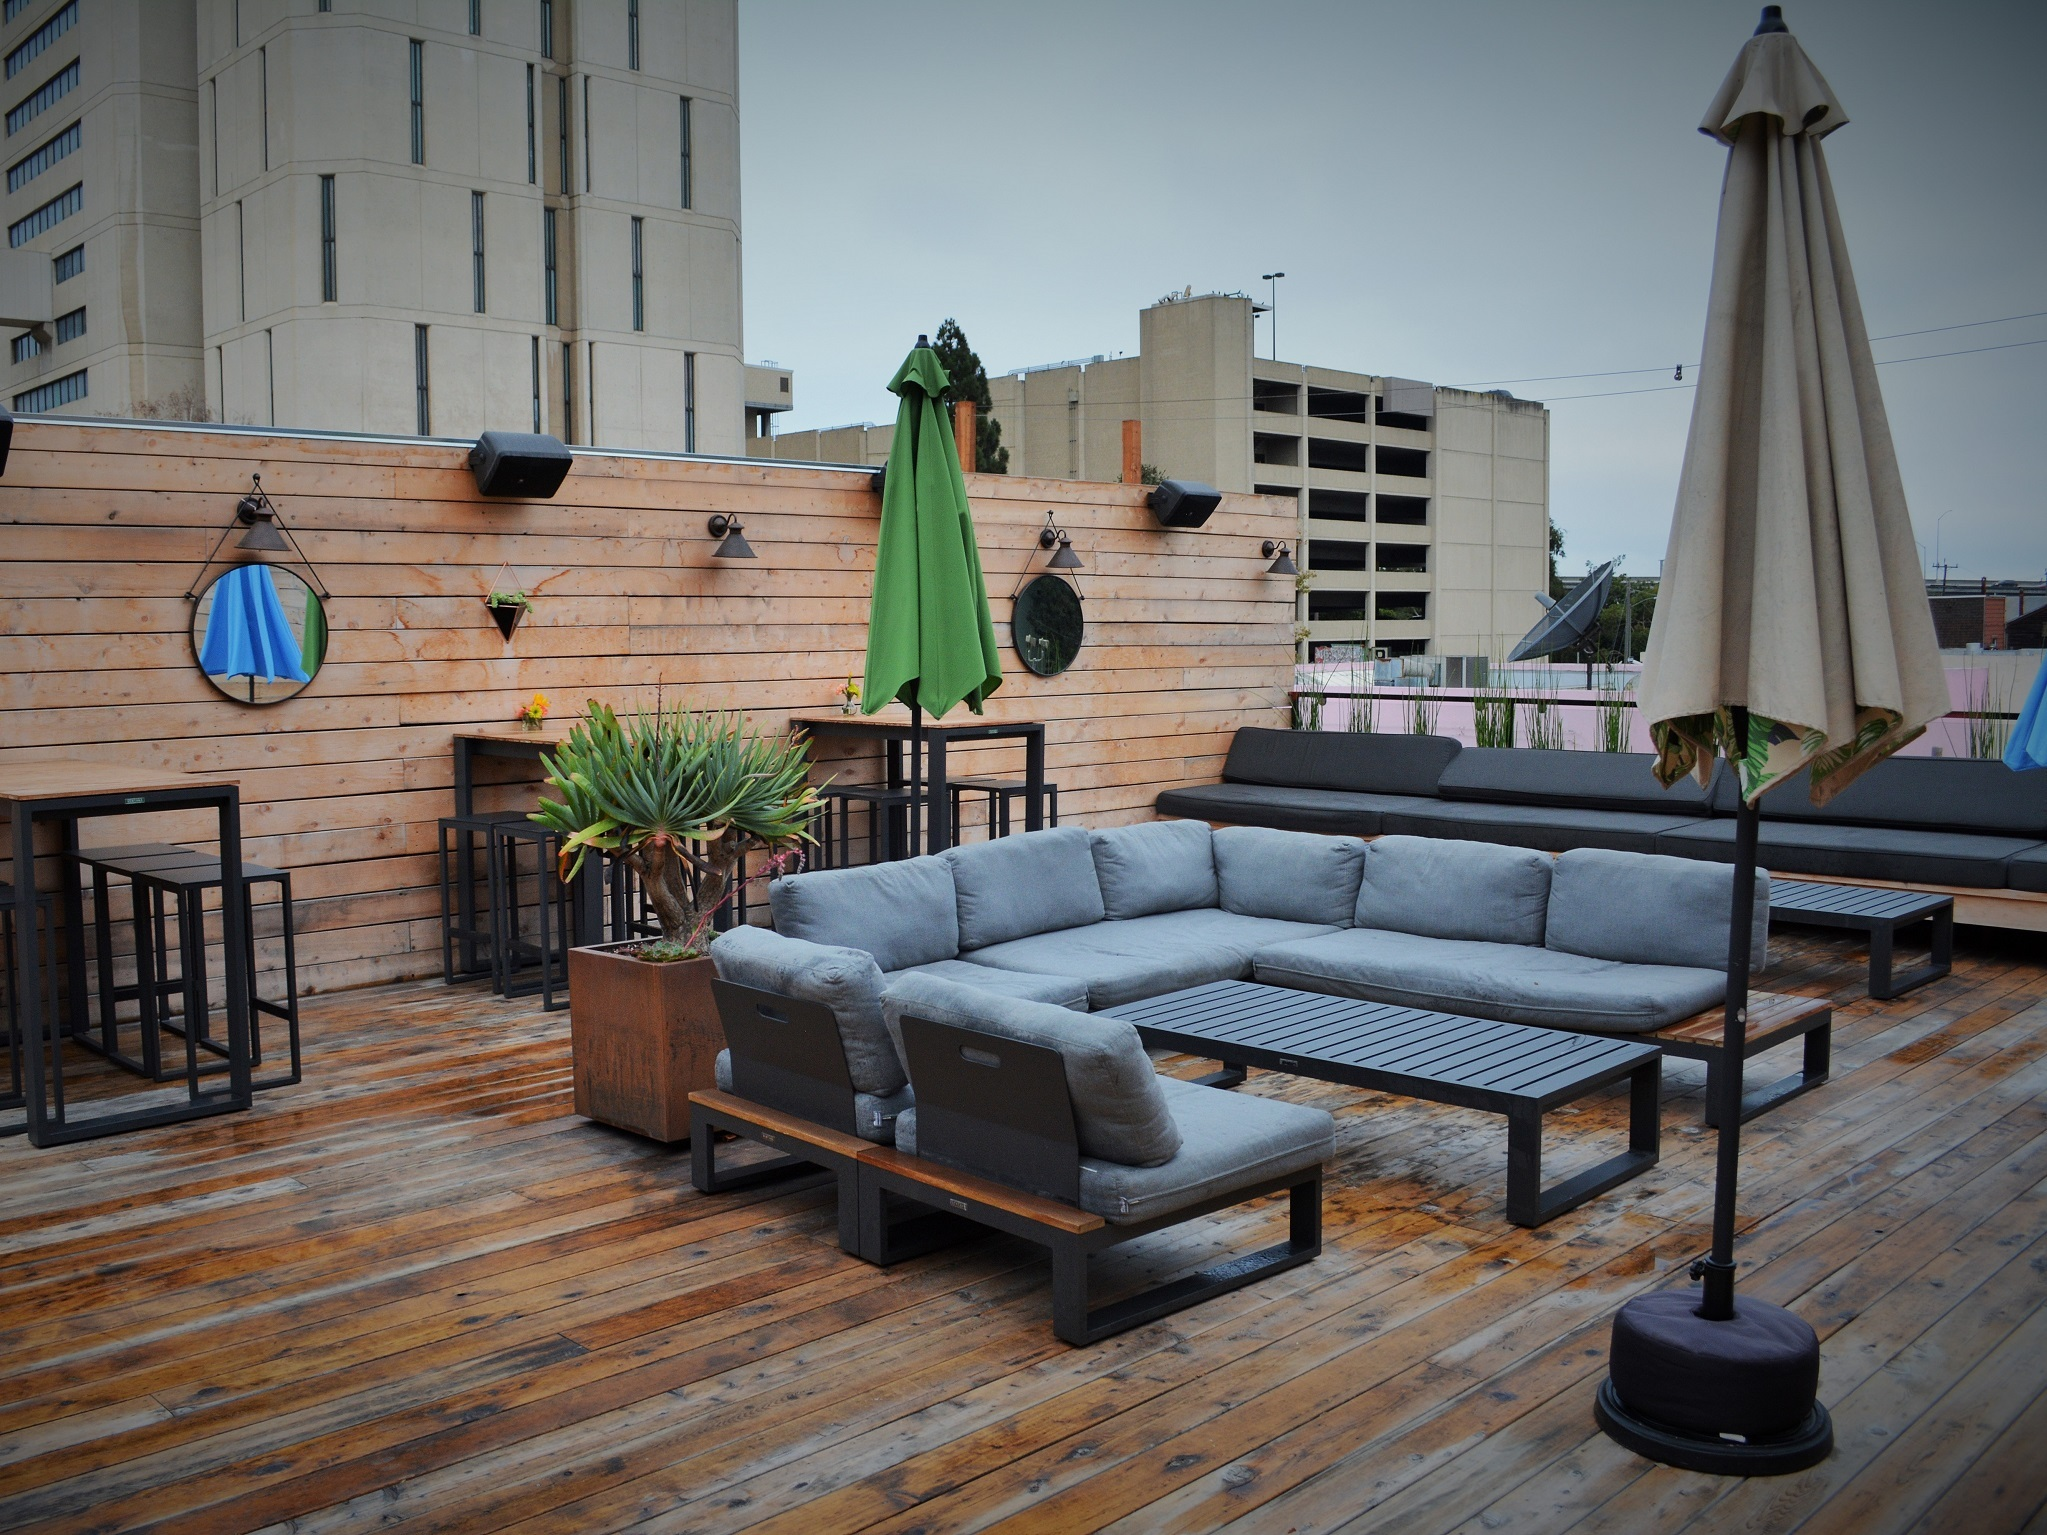 Blue couches and umbrellas on a roof deck